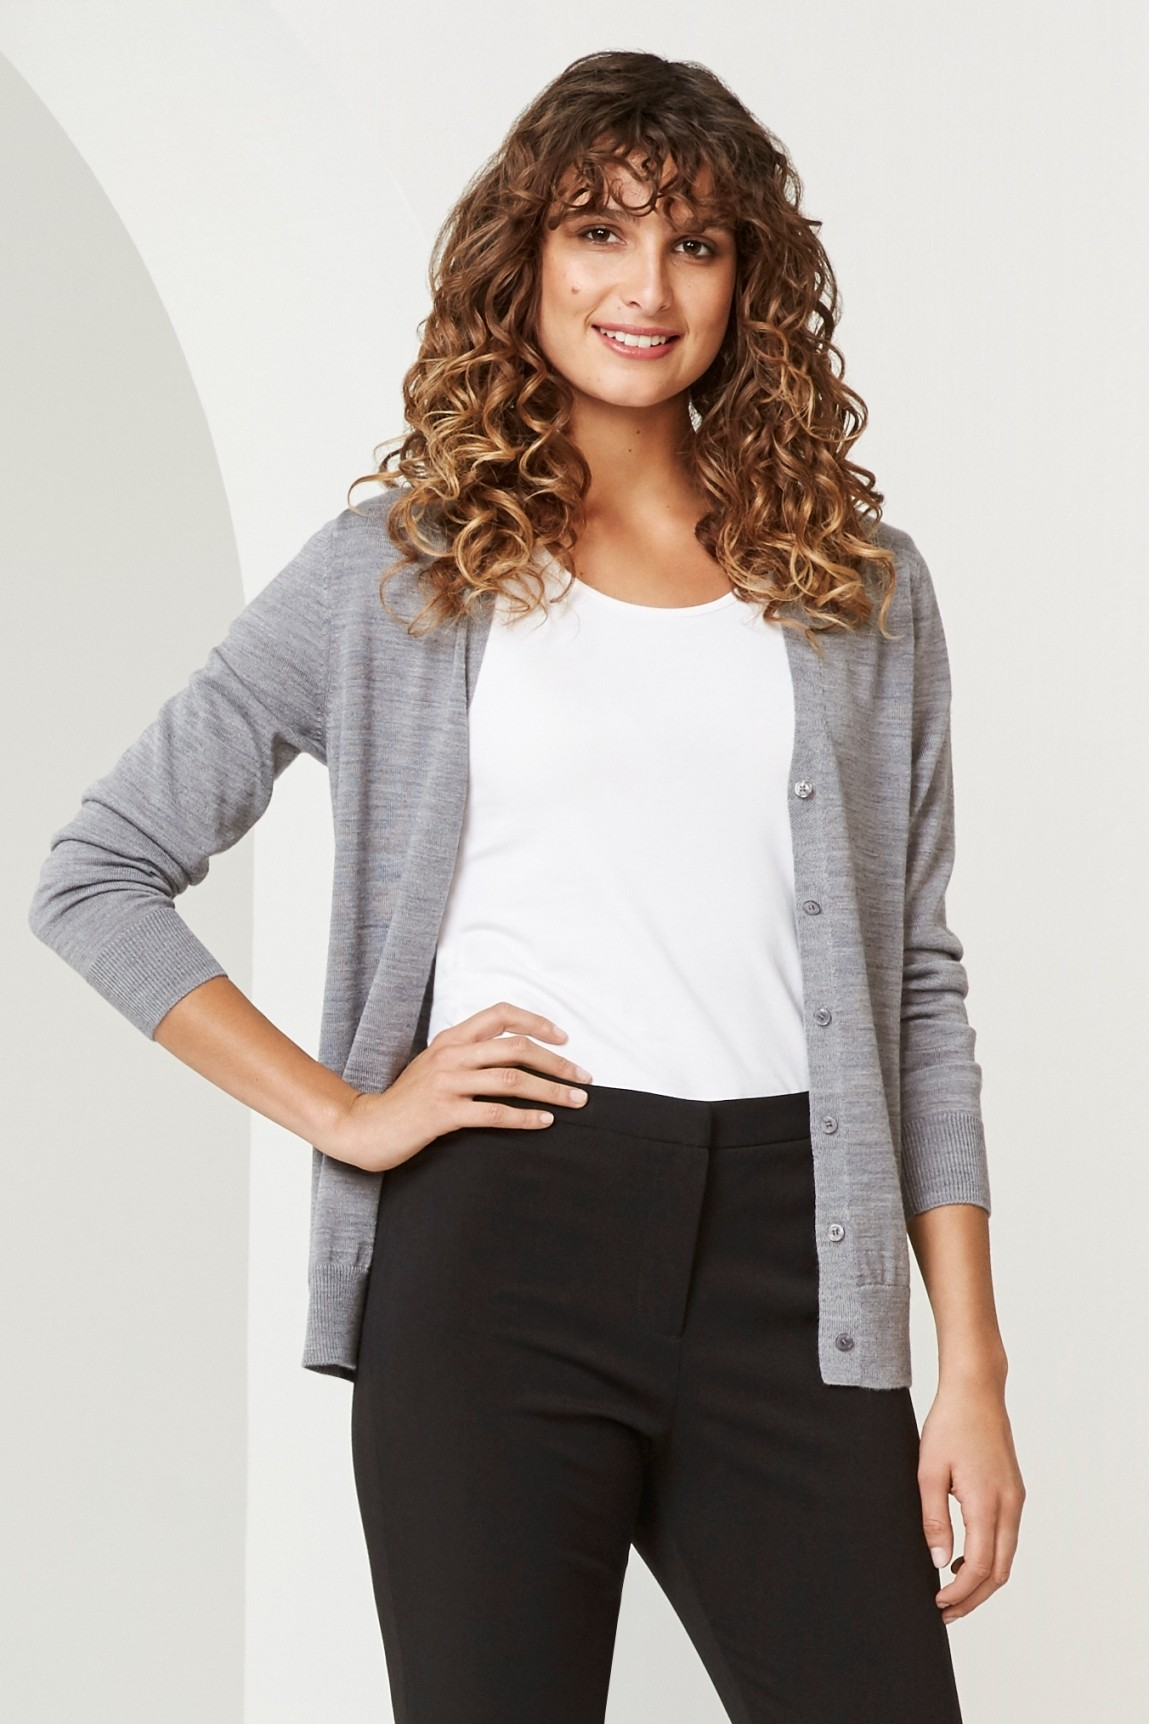 Ladies Roma 50% Merino Knit Cardigan